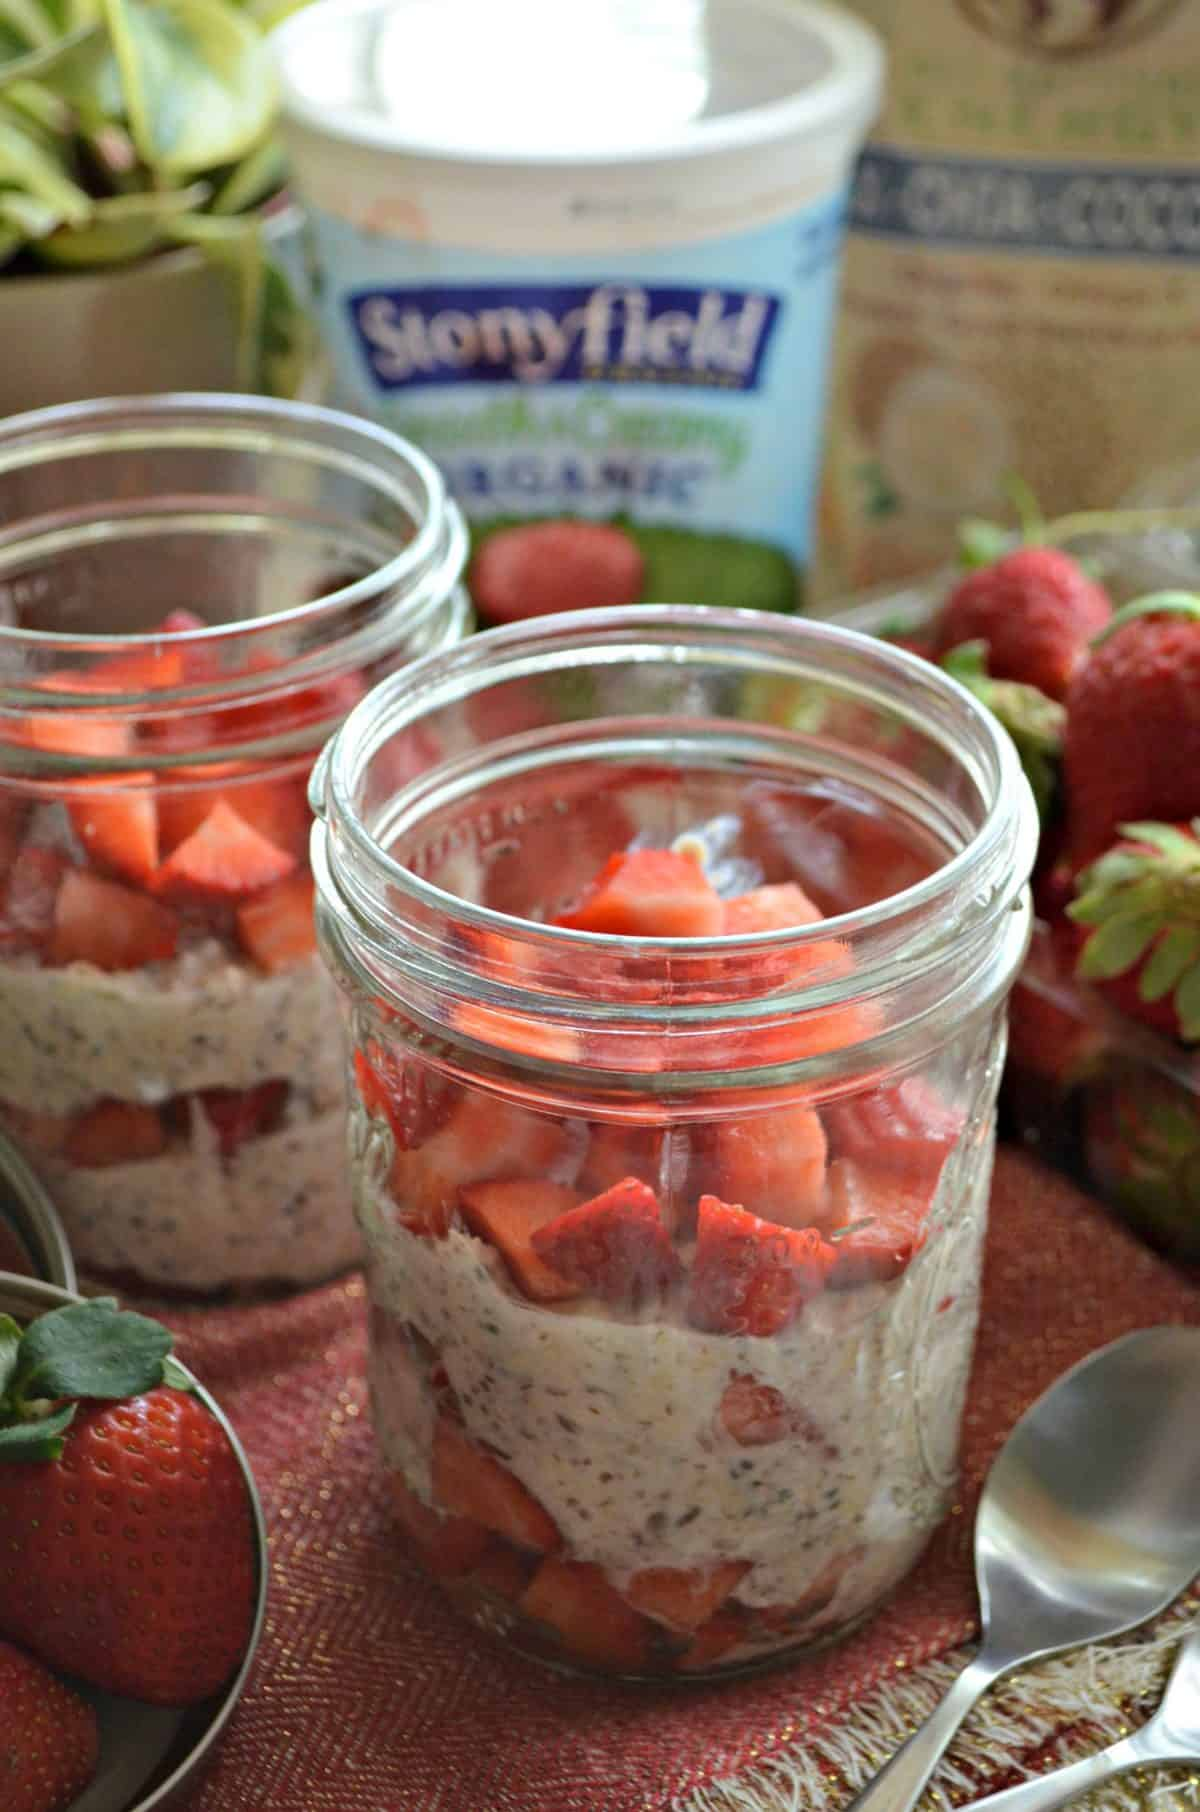 close up top view of small mason jar filled with oatmeal looking substance and chopped strawberries.